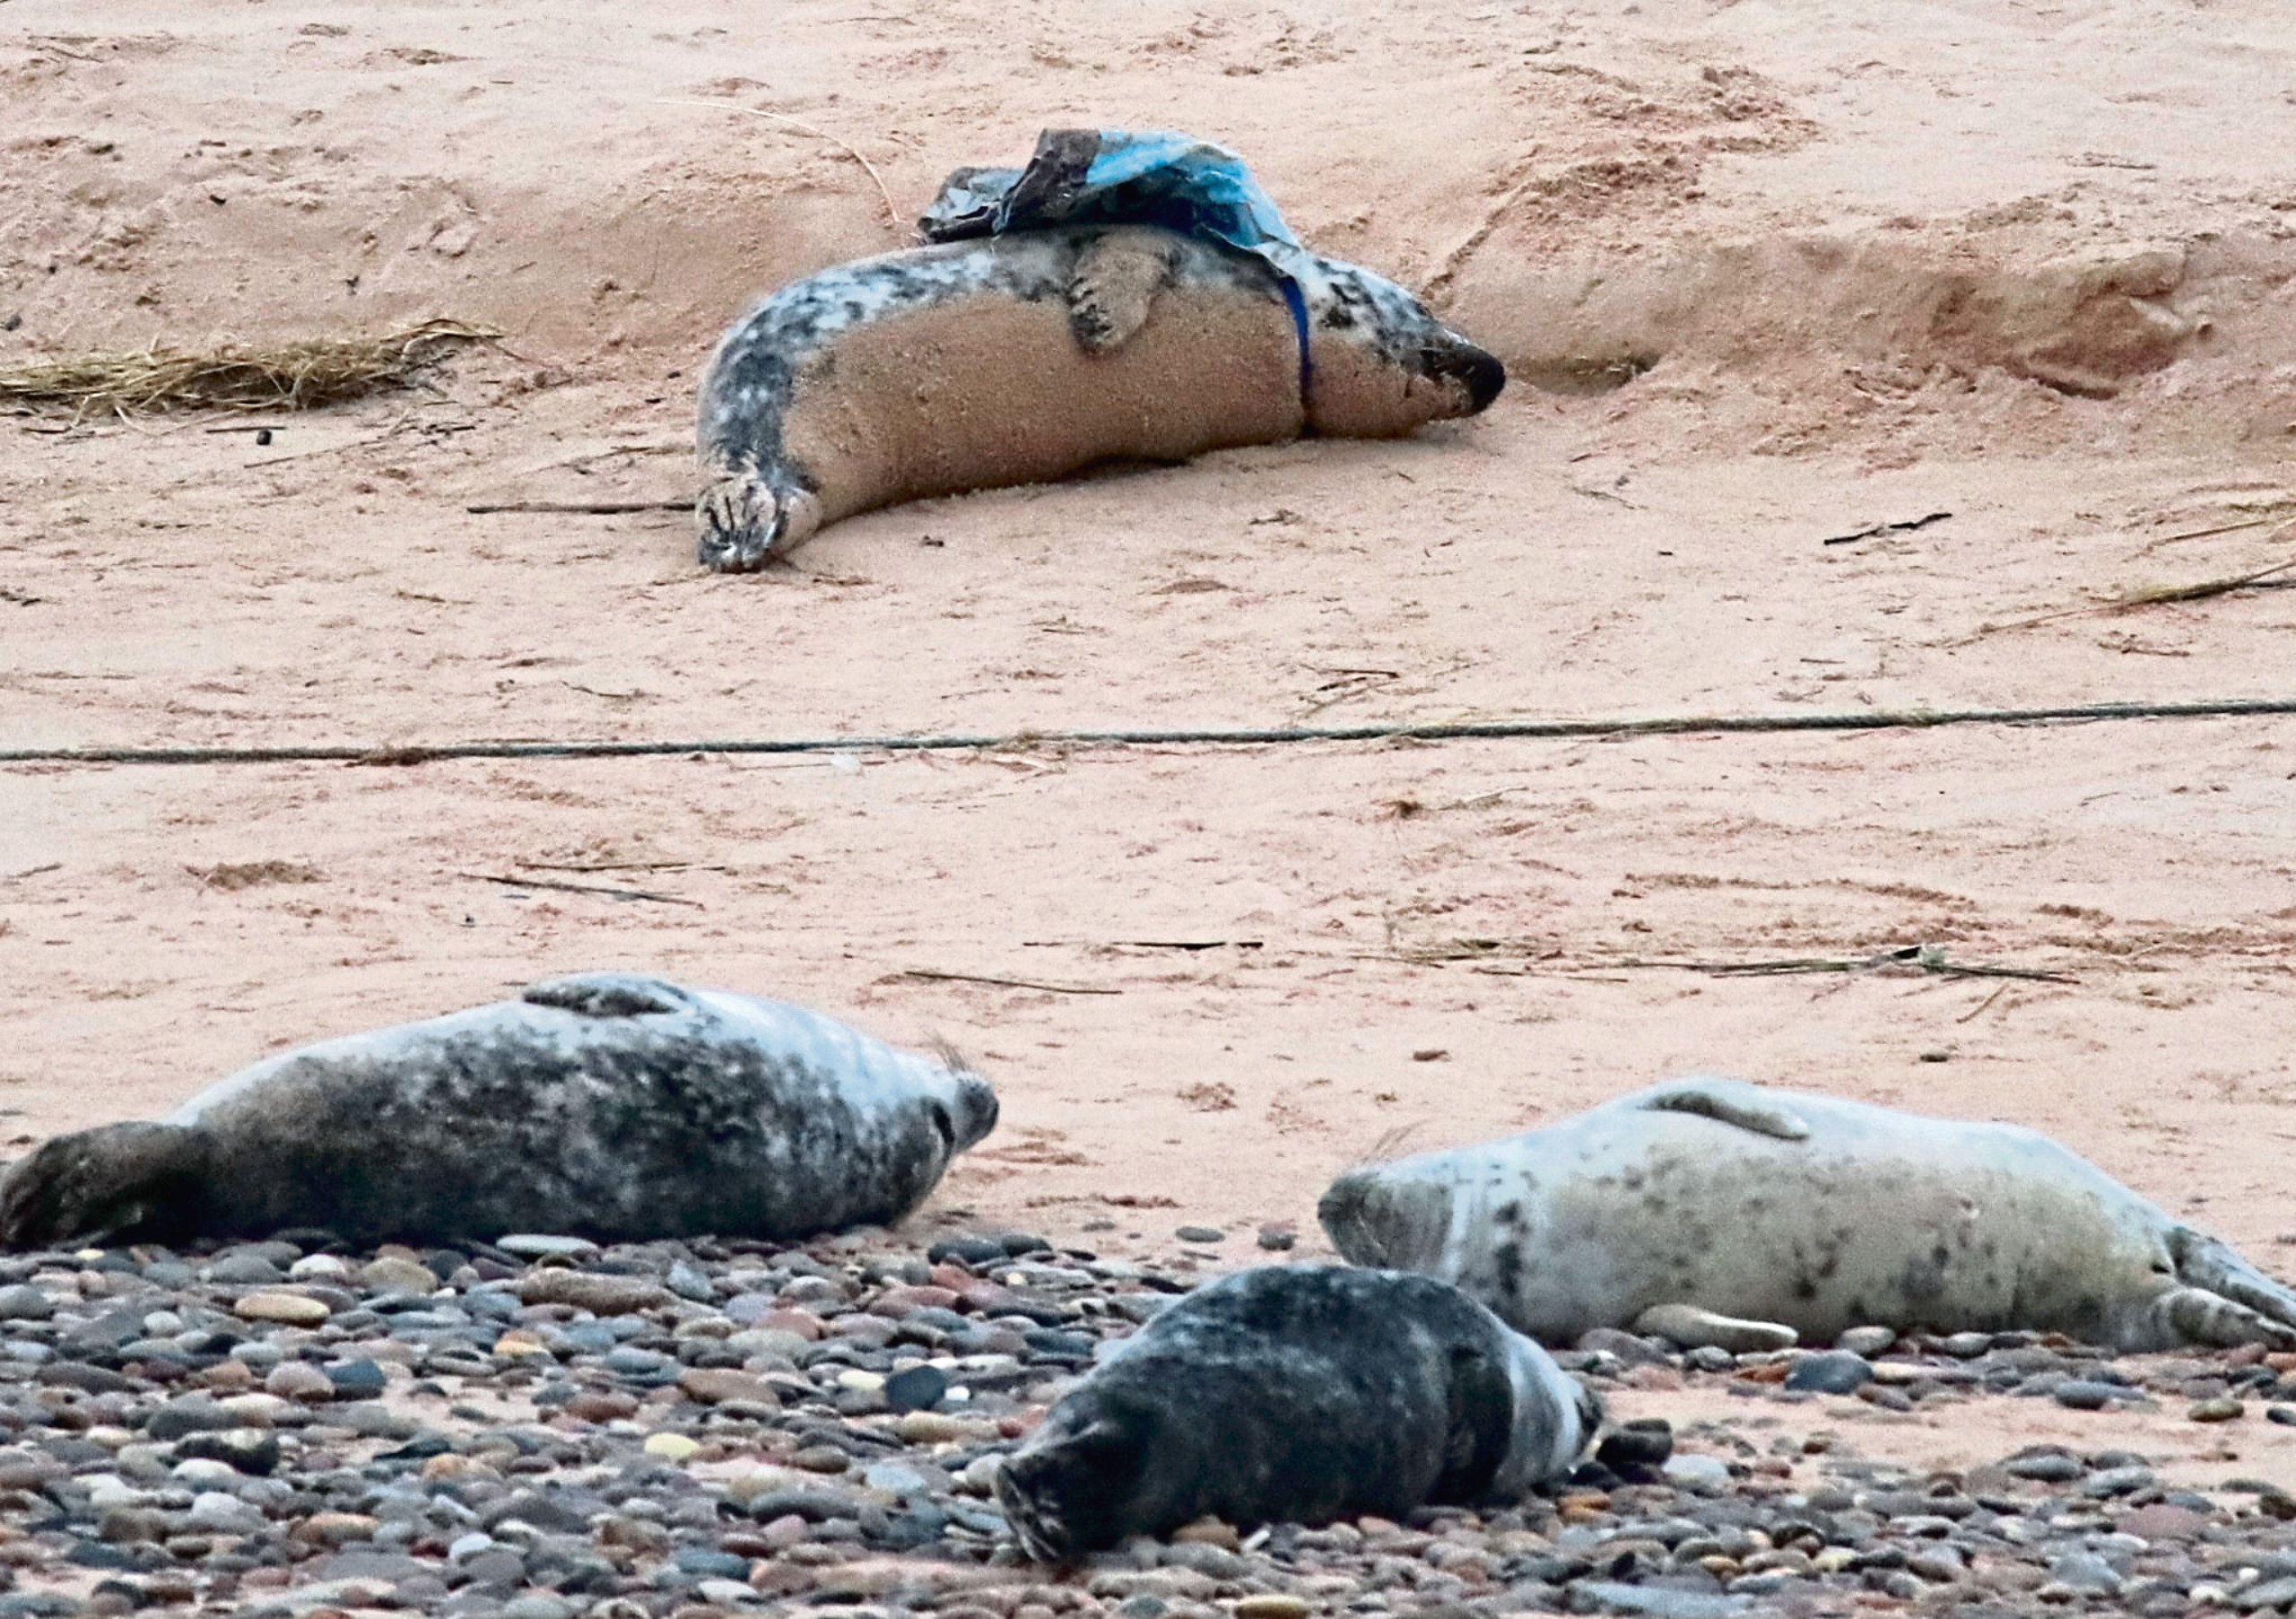 The seals had escaped by the time the teams arrived. Photo courtesy of Cameron Barclay.